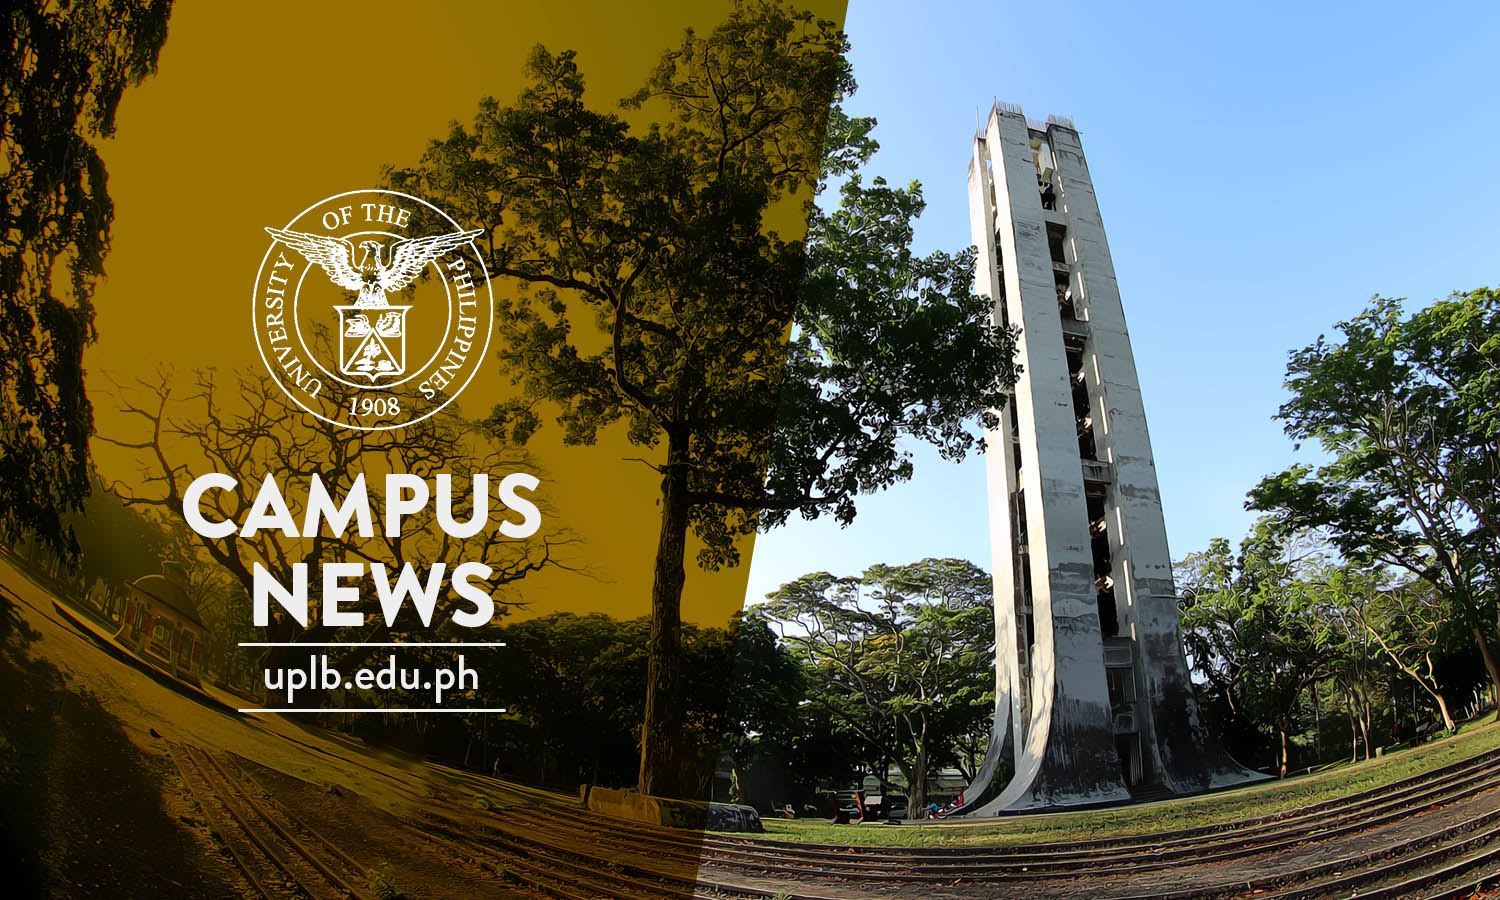 UPLB officials to attend entrep bootcamp & explore partnerships with US universities